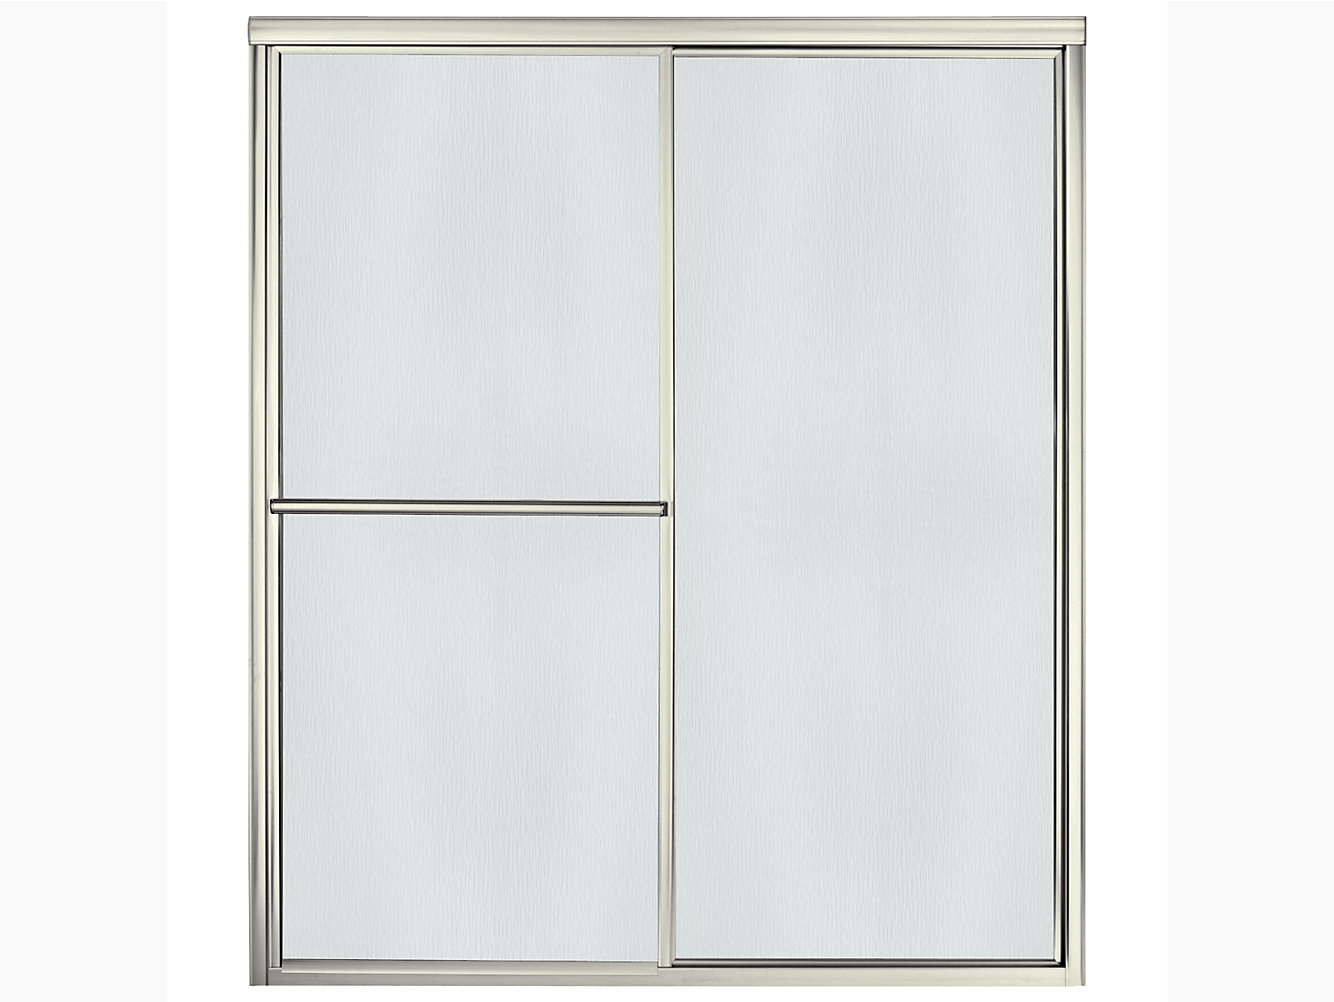 Deluxe Framed Sliding Shower Door 54-3/8\